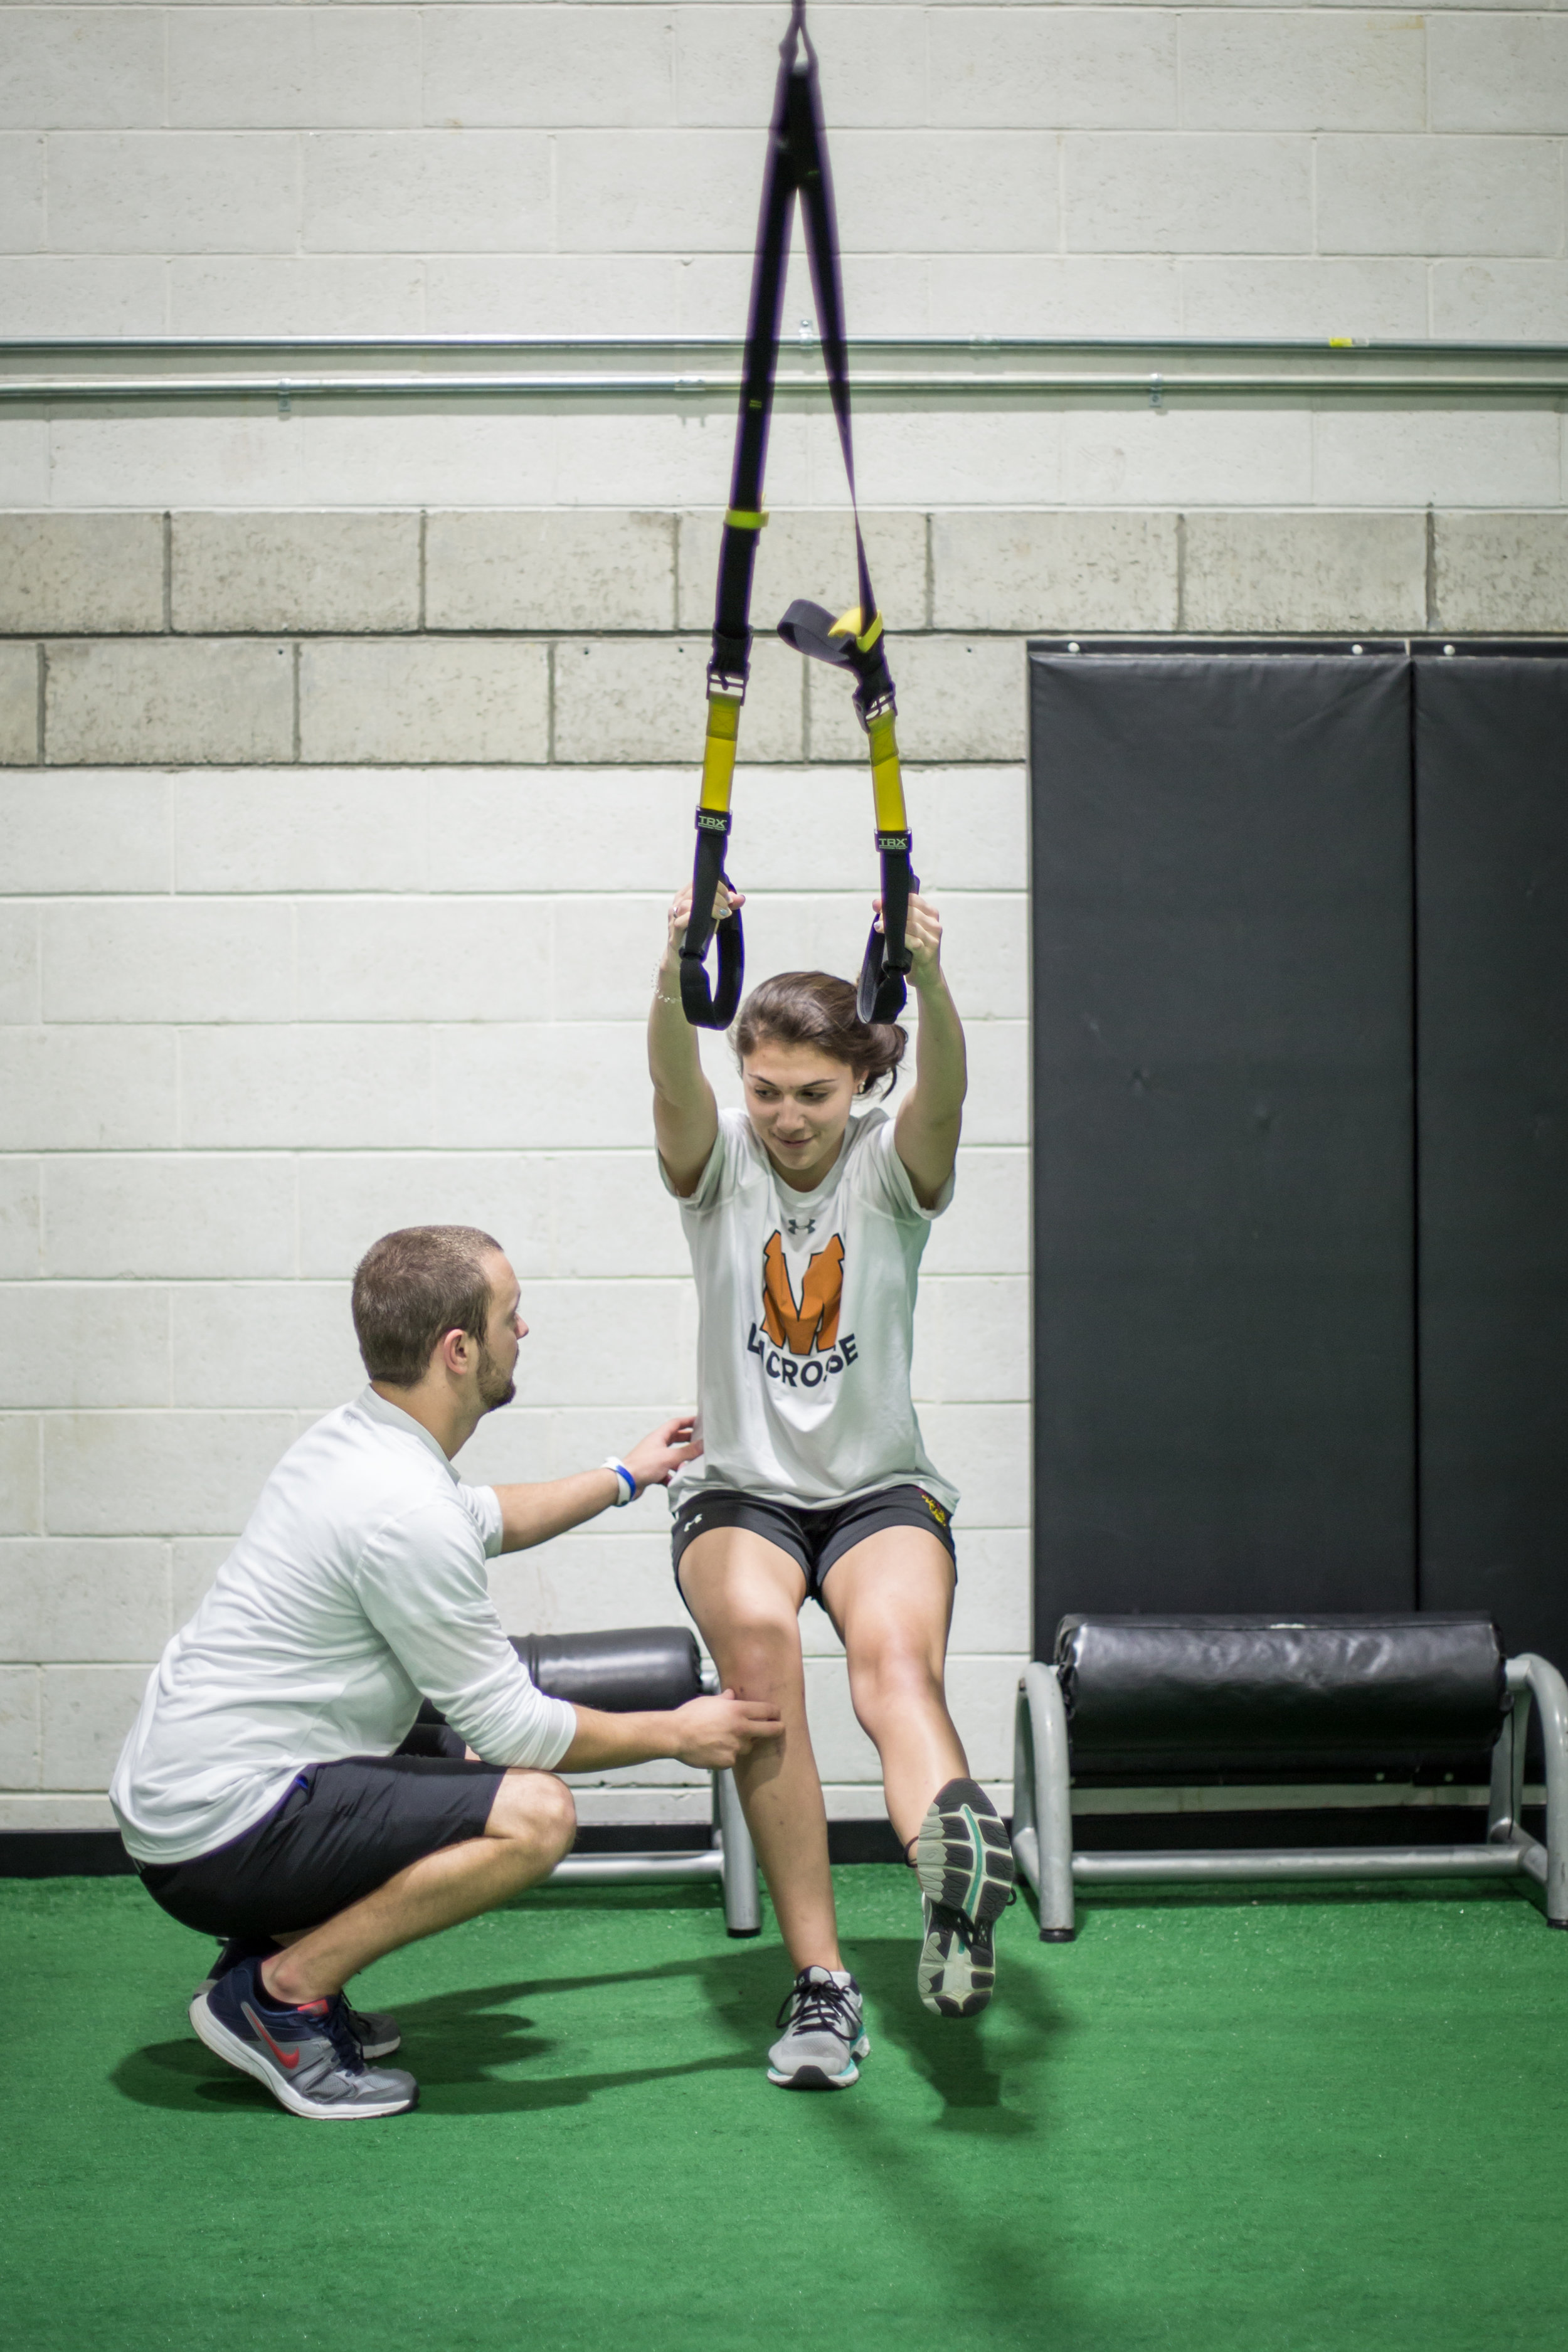 Howard county best sports physical therapy, Baltimore sports physical therapy, sports rehab, Elkridge physical therapy, Columbia physical therapy, ACL rehab, ACL prevention, lacrosse injuries